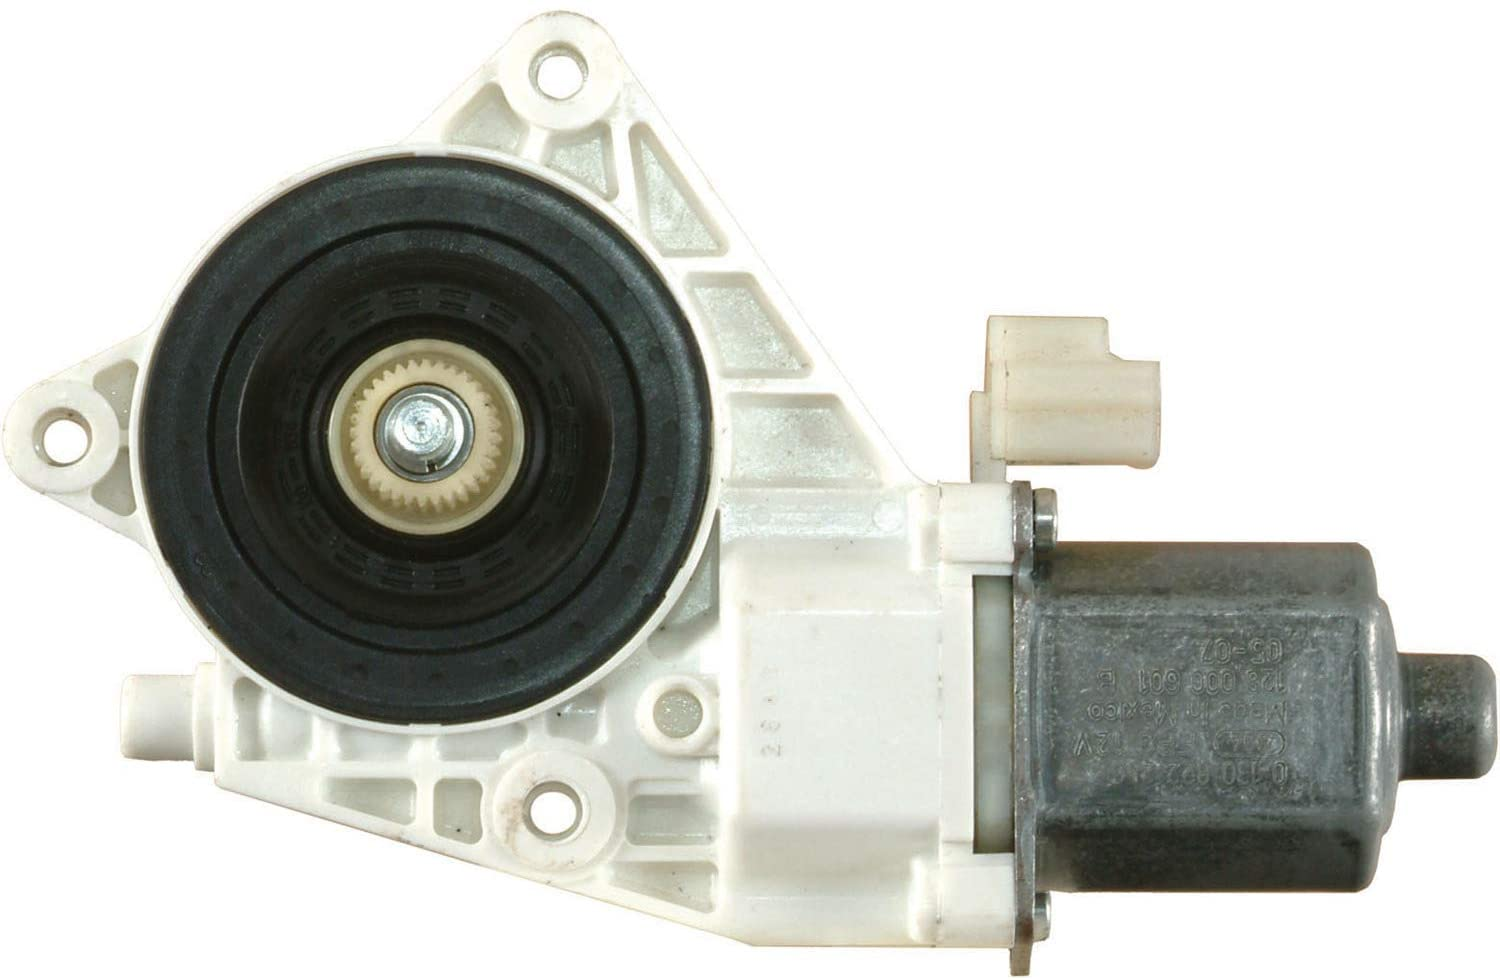 A1 Cardone 42-3042 Remanufactured Window Lift Motor, 1 Pack